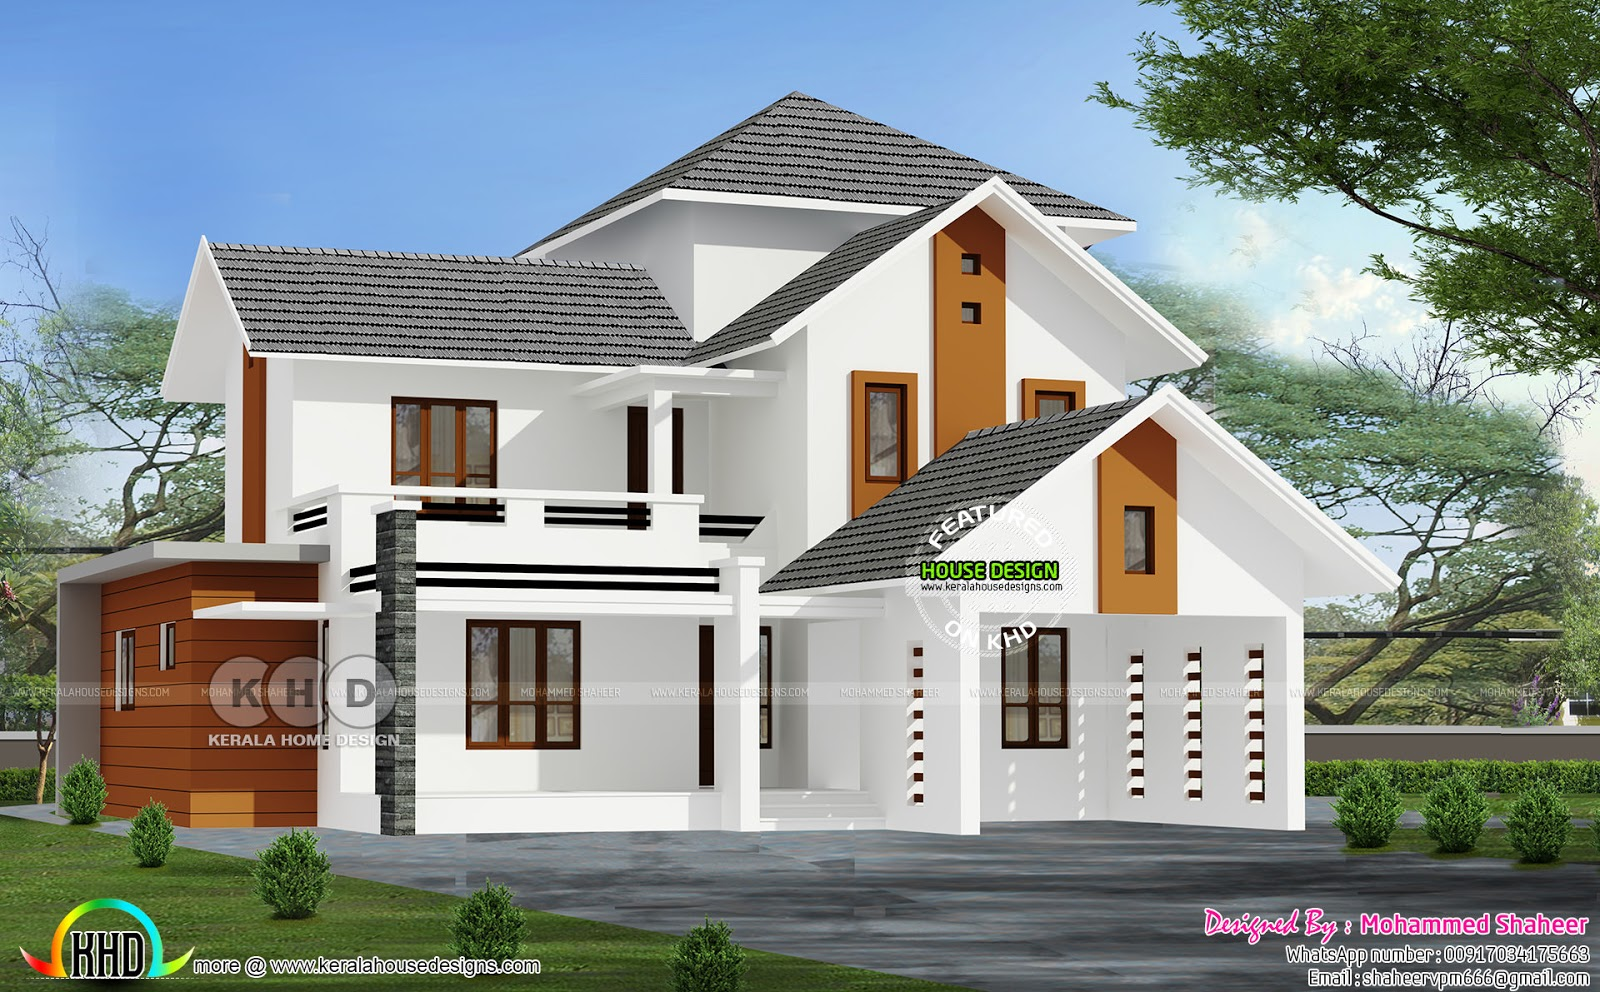 Sloping roof 3000 sq ft house with 4 bedrooms kerala for 3000 sq ft building